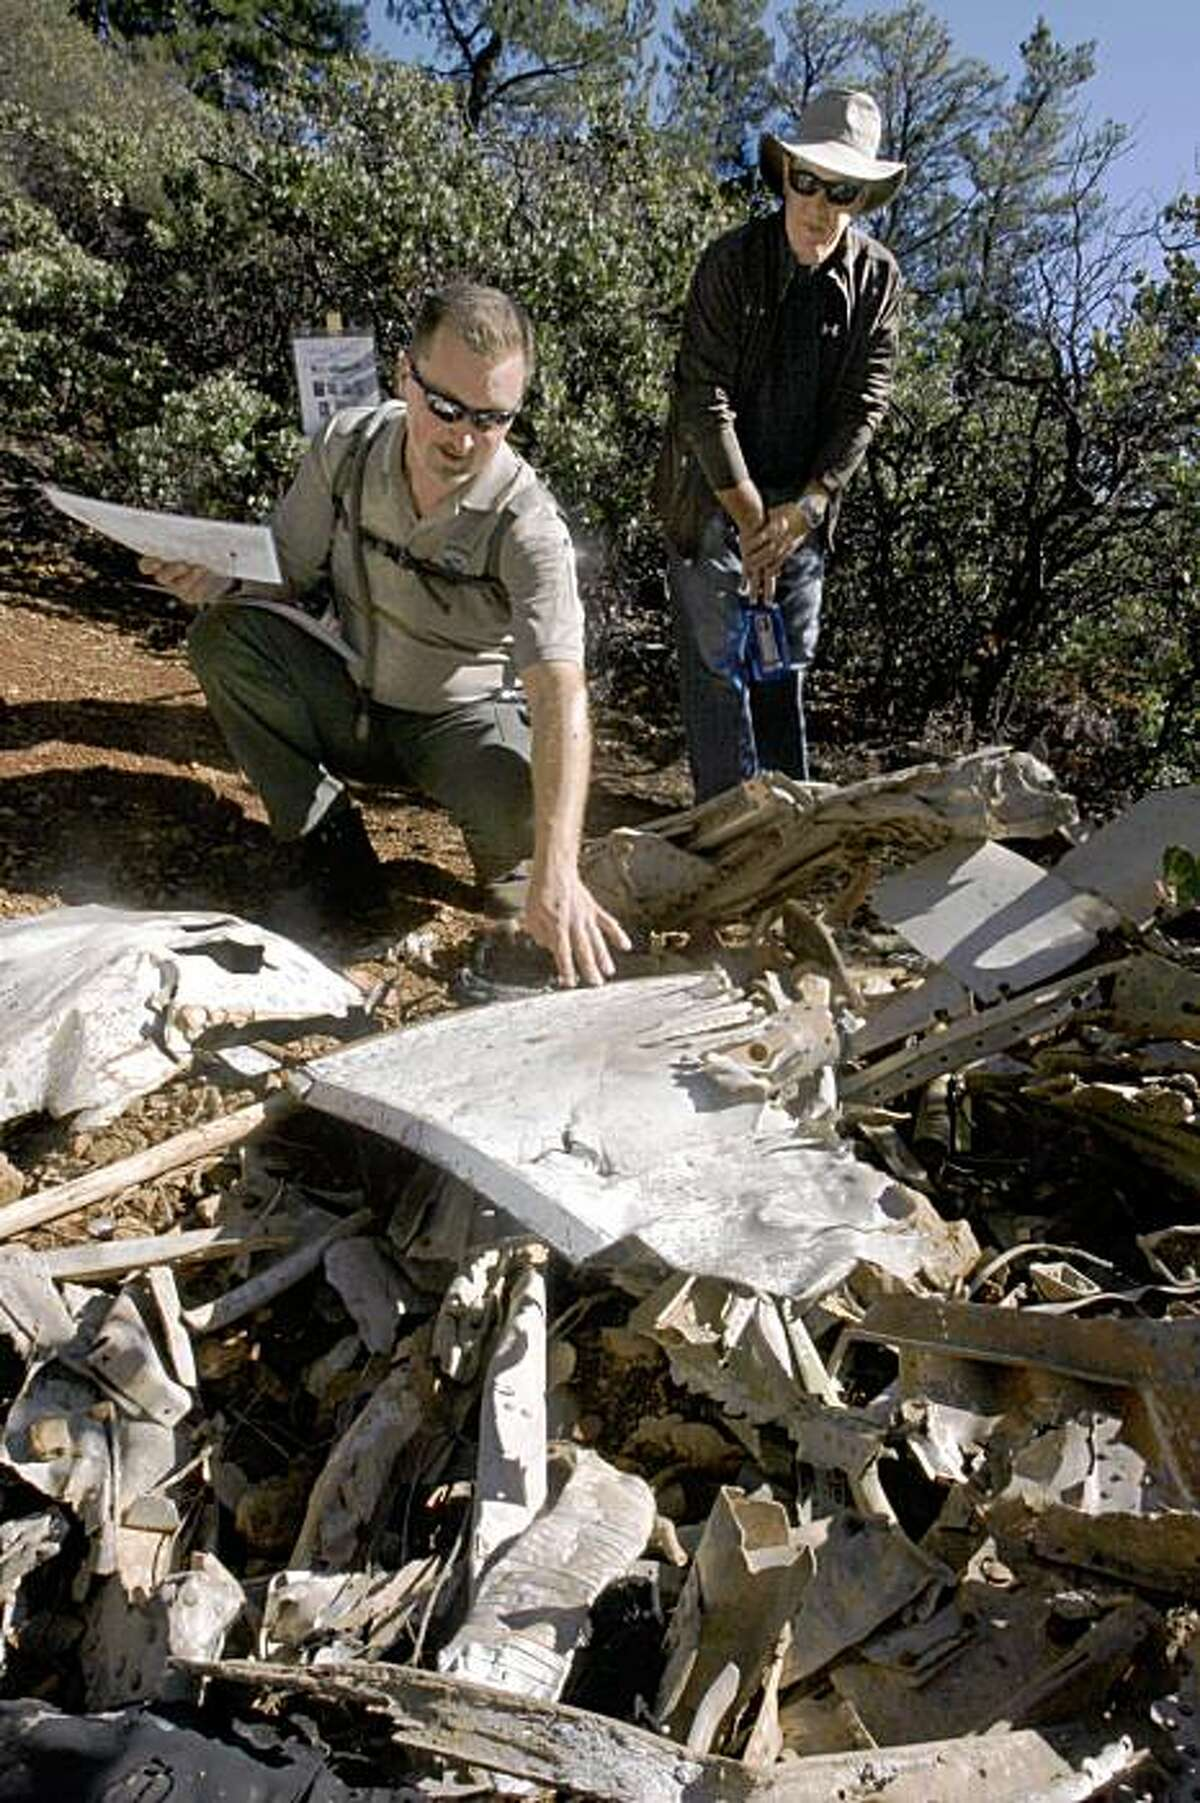 Ranger Matt Cerkel (left) shows pilots of the Gnoss Field Community Association the site of the 1944 naval plane crash on Mt. Tamalpais as he lifts plane parts in Mill Valley, CA, on Monday, November 23 , 2009. On the last day of November, 1944, a navy patrol bomber martin aircraft crashed into the side of Mt. Tamalpais killing all eight aboard. In back is pilot Kevin Rodondi.